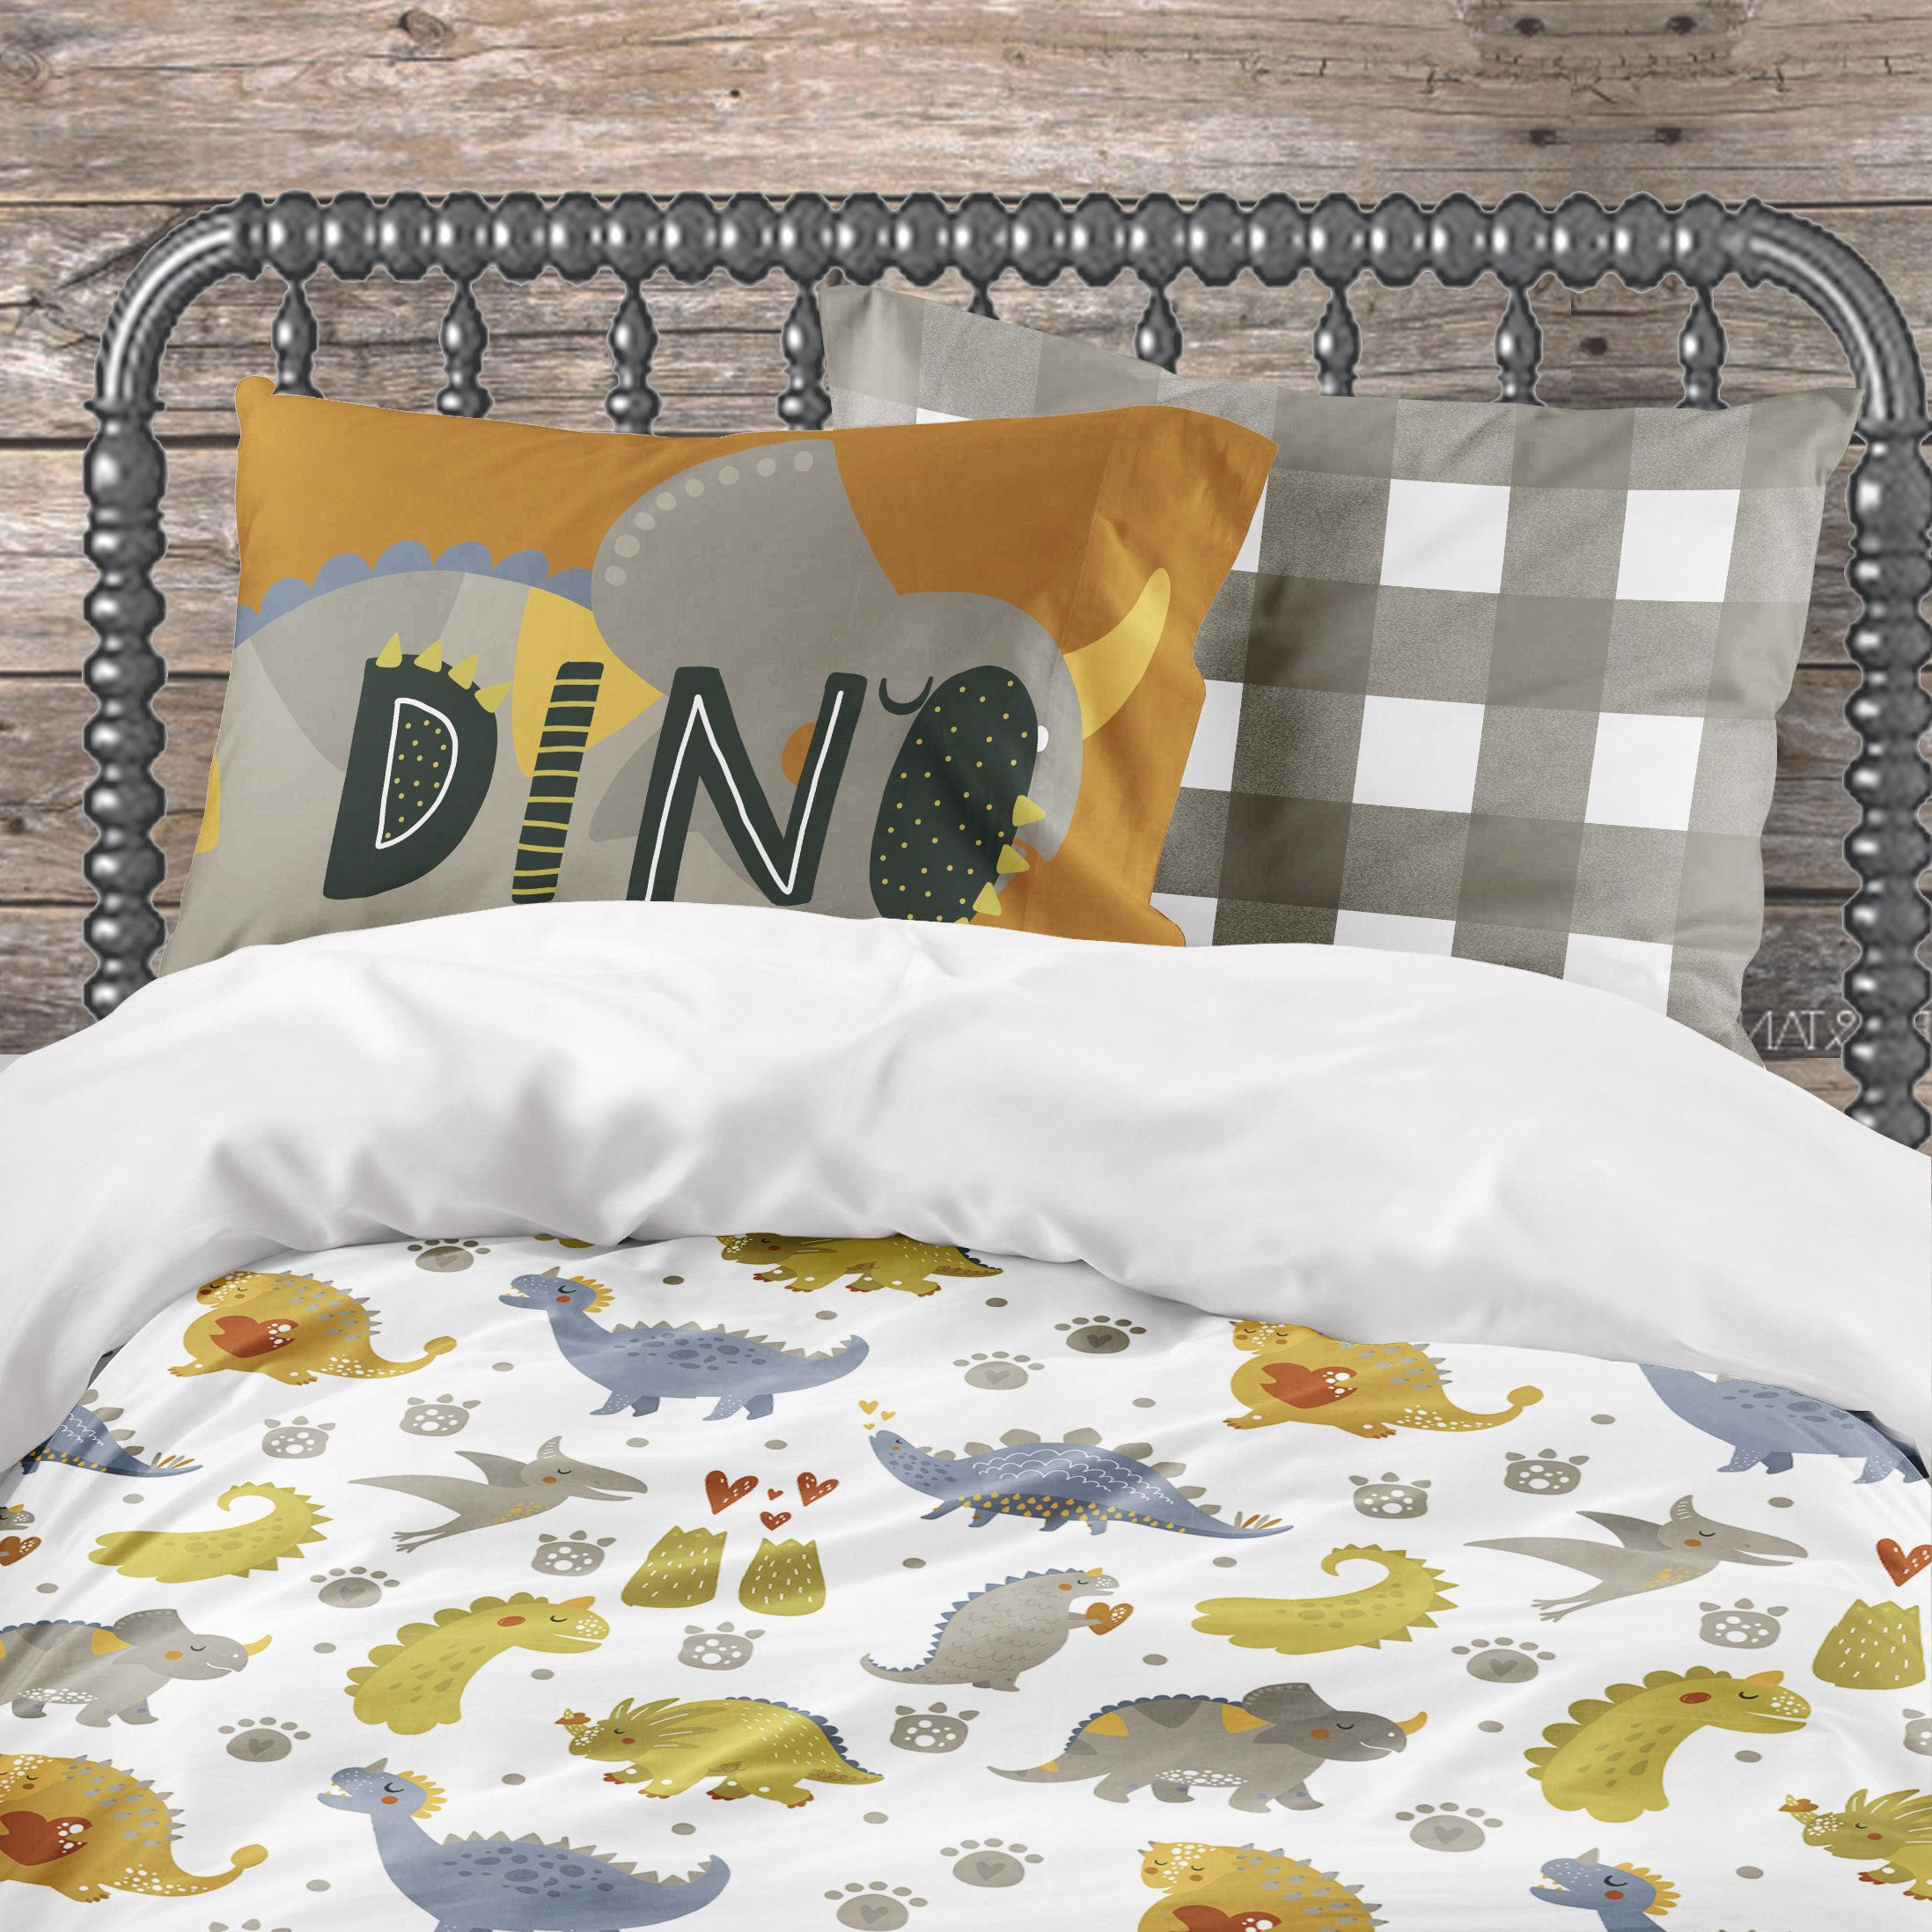 Dinosaur Bedding Set For Toddler Twin And Queen Size Bed Dino Comforter Duvet Cover Plaid Sheet Set Pillowcases In 2020 Dinosaur Bedding Set Toddler Bed Set Dinosaur Bedding